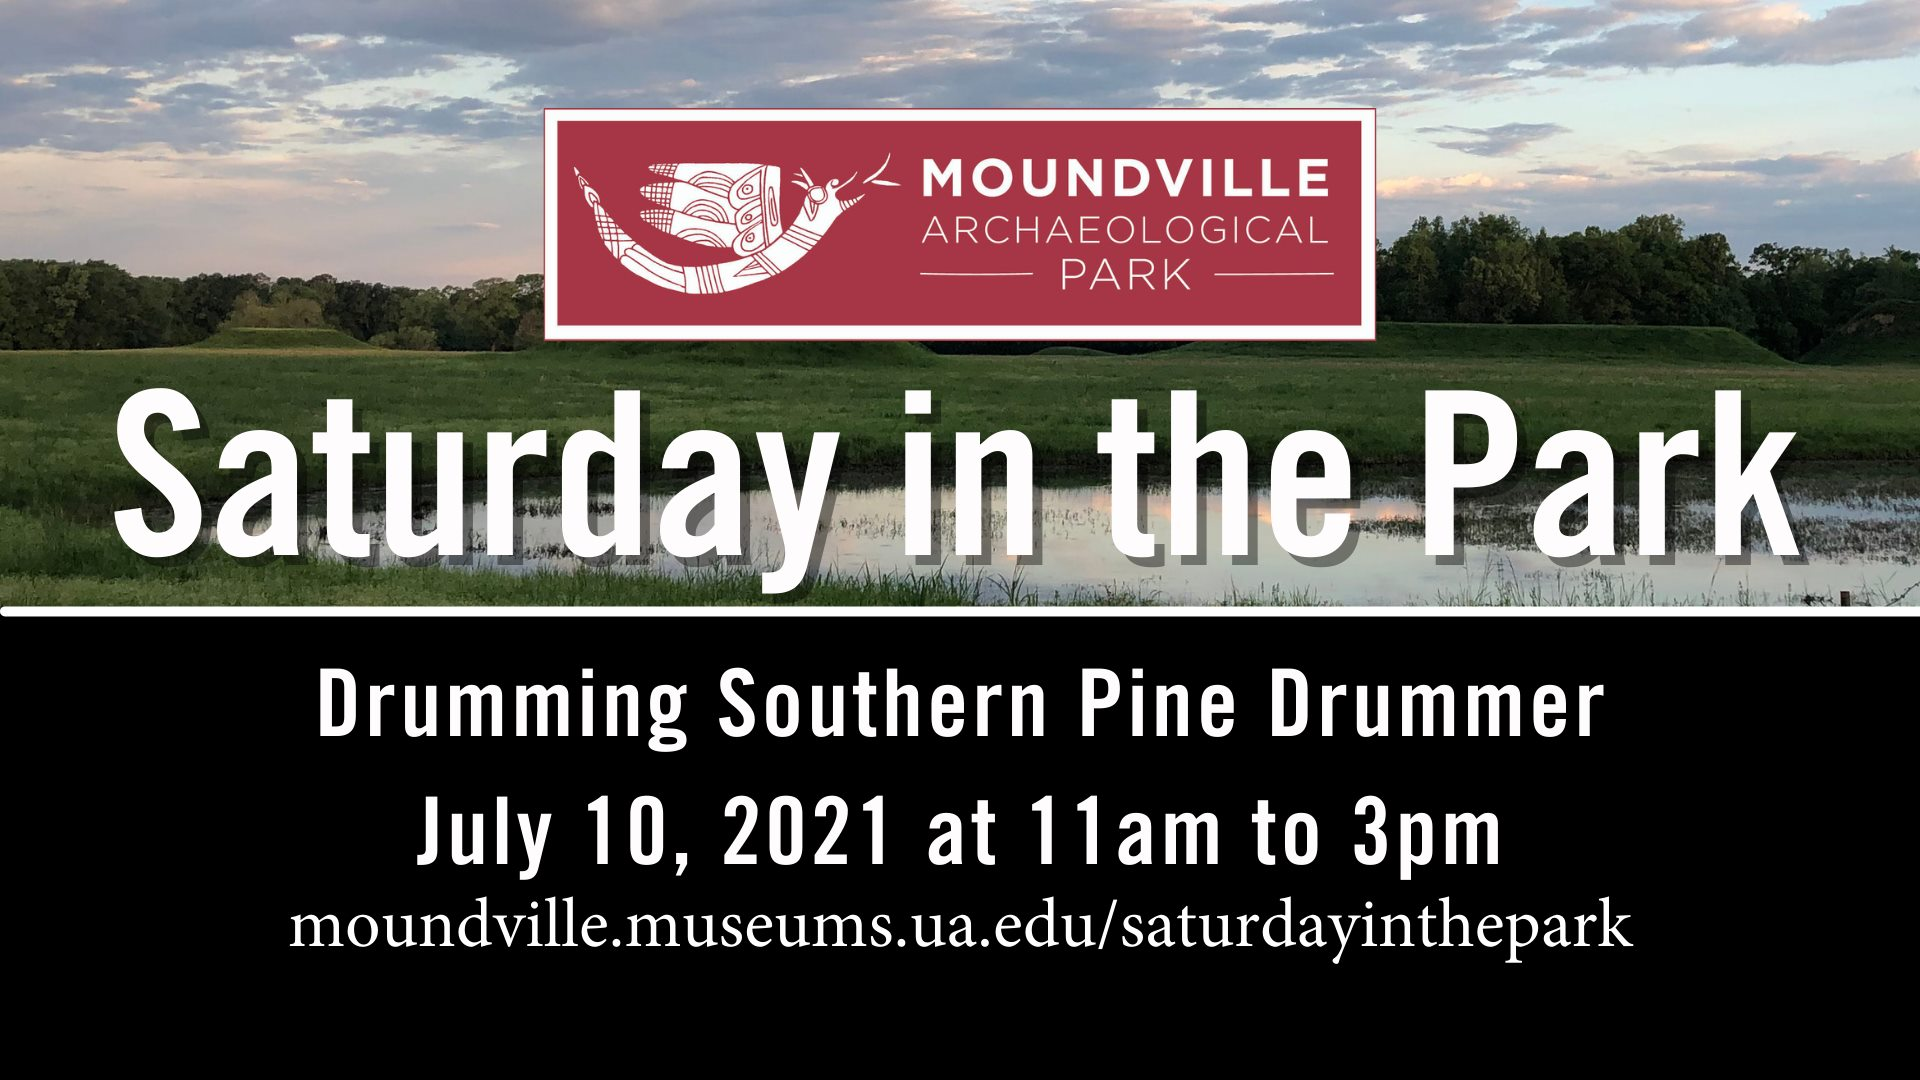 Saturday in the Park: Drumming Southern Pine Drummer